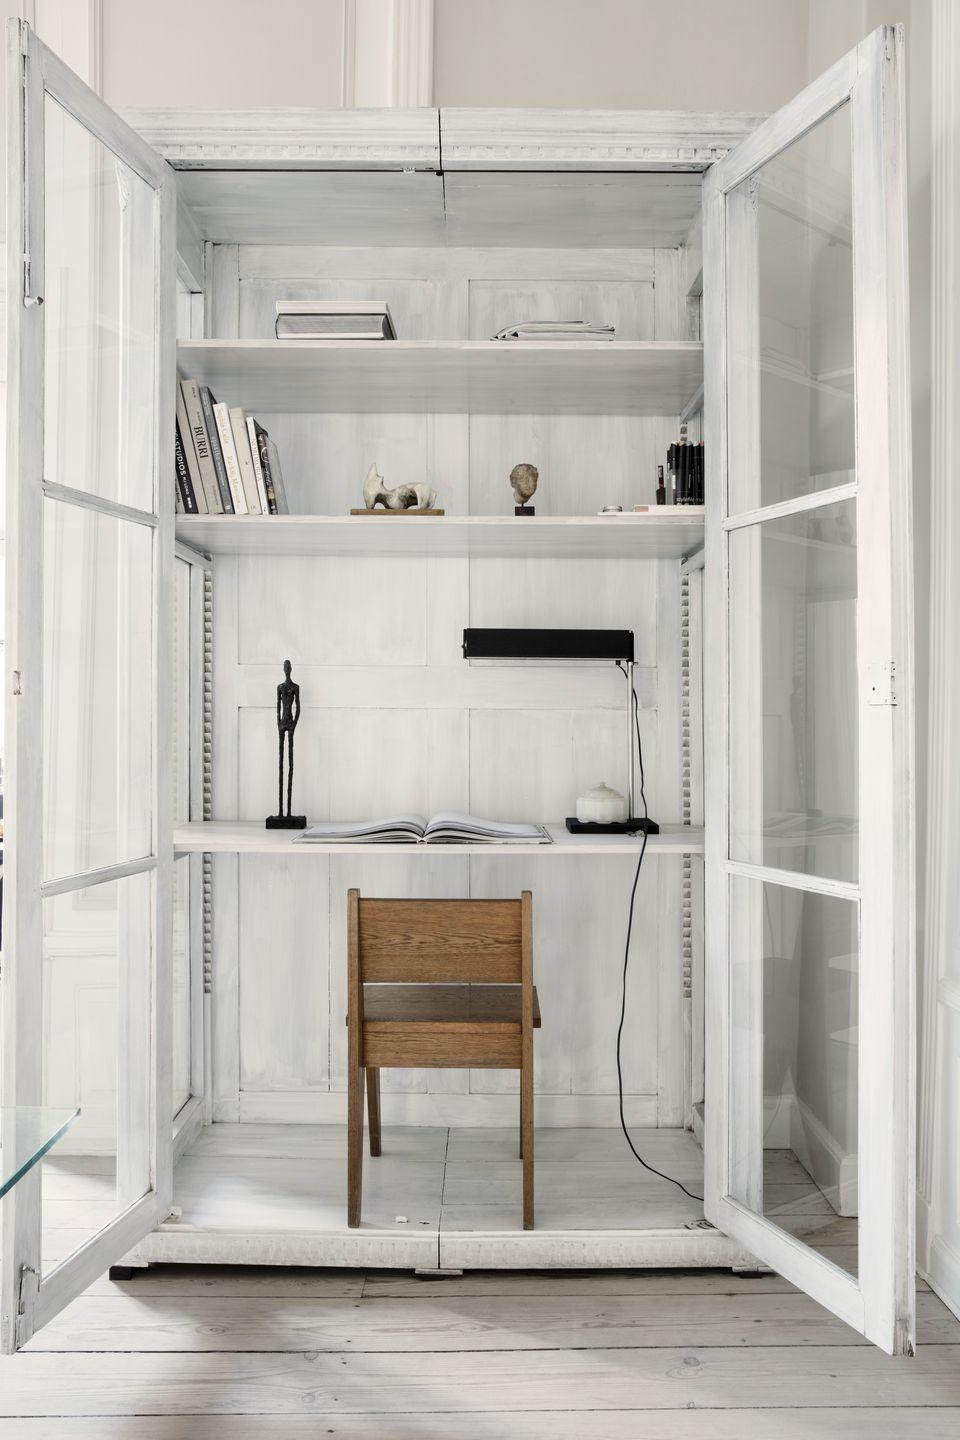 """<p>No extra room for a dedicated study, but still want to be able to lock the door on work at the end of the day? Interior designer and collector Oliver Gustav's answer is an upcycled Danish cabinet. Found in a zoological museum, it's been transformed – by removing a few shelves to make room for a chair – into a dedicated desk. <a href=""""https://olivergustav.com/"""" rel=""""nofollow noopener"""" target=""""_blank"""" data-ylk=""""slk:olivergustav.com"""" class=""""link rapid-noclick-resp"""">olivergustav.com</a></p>"""